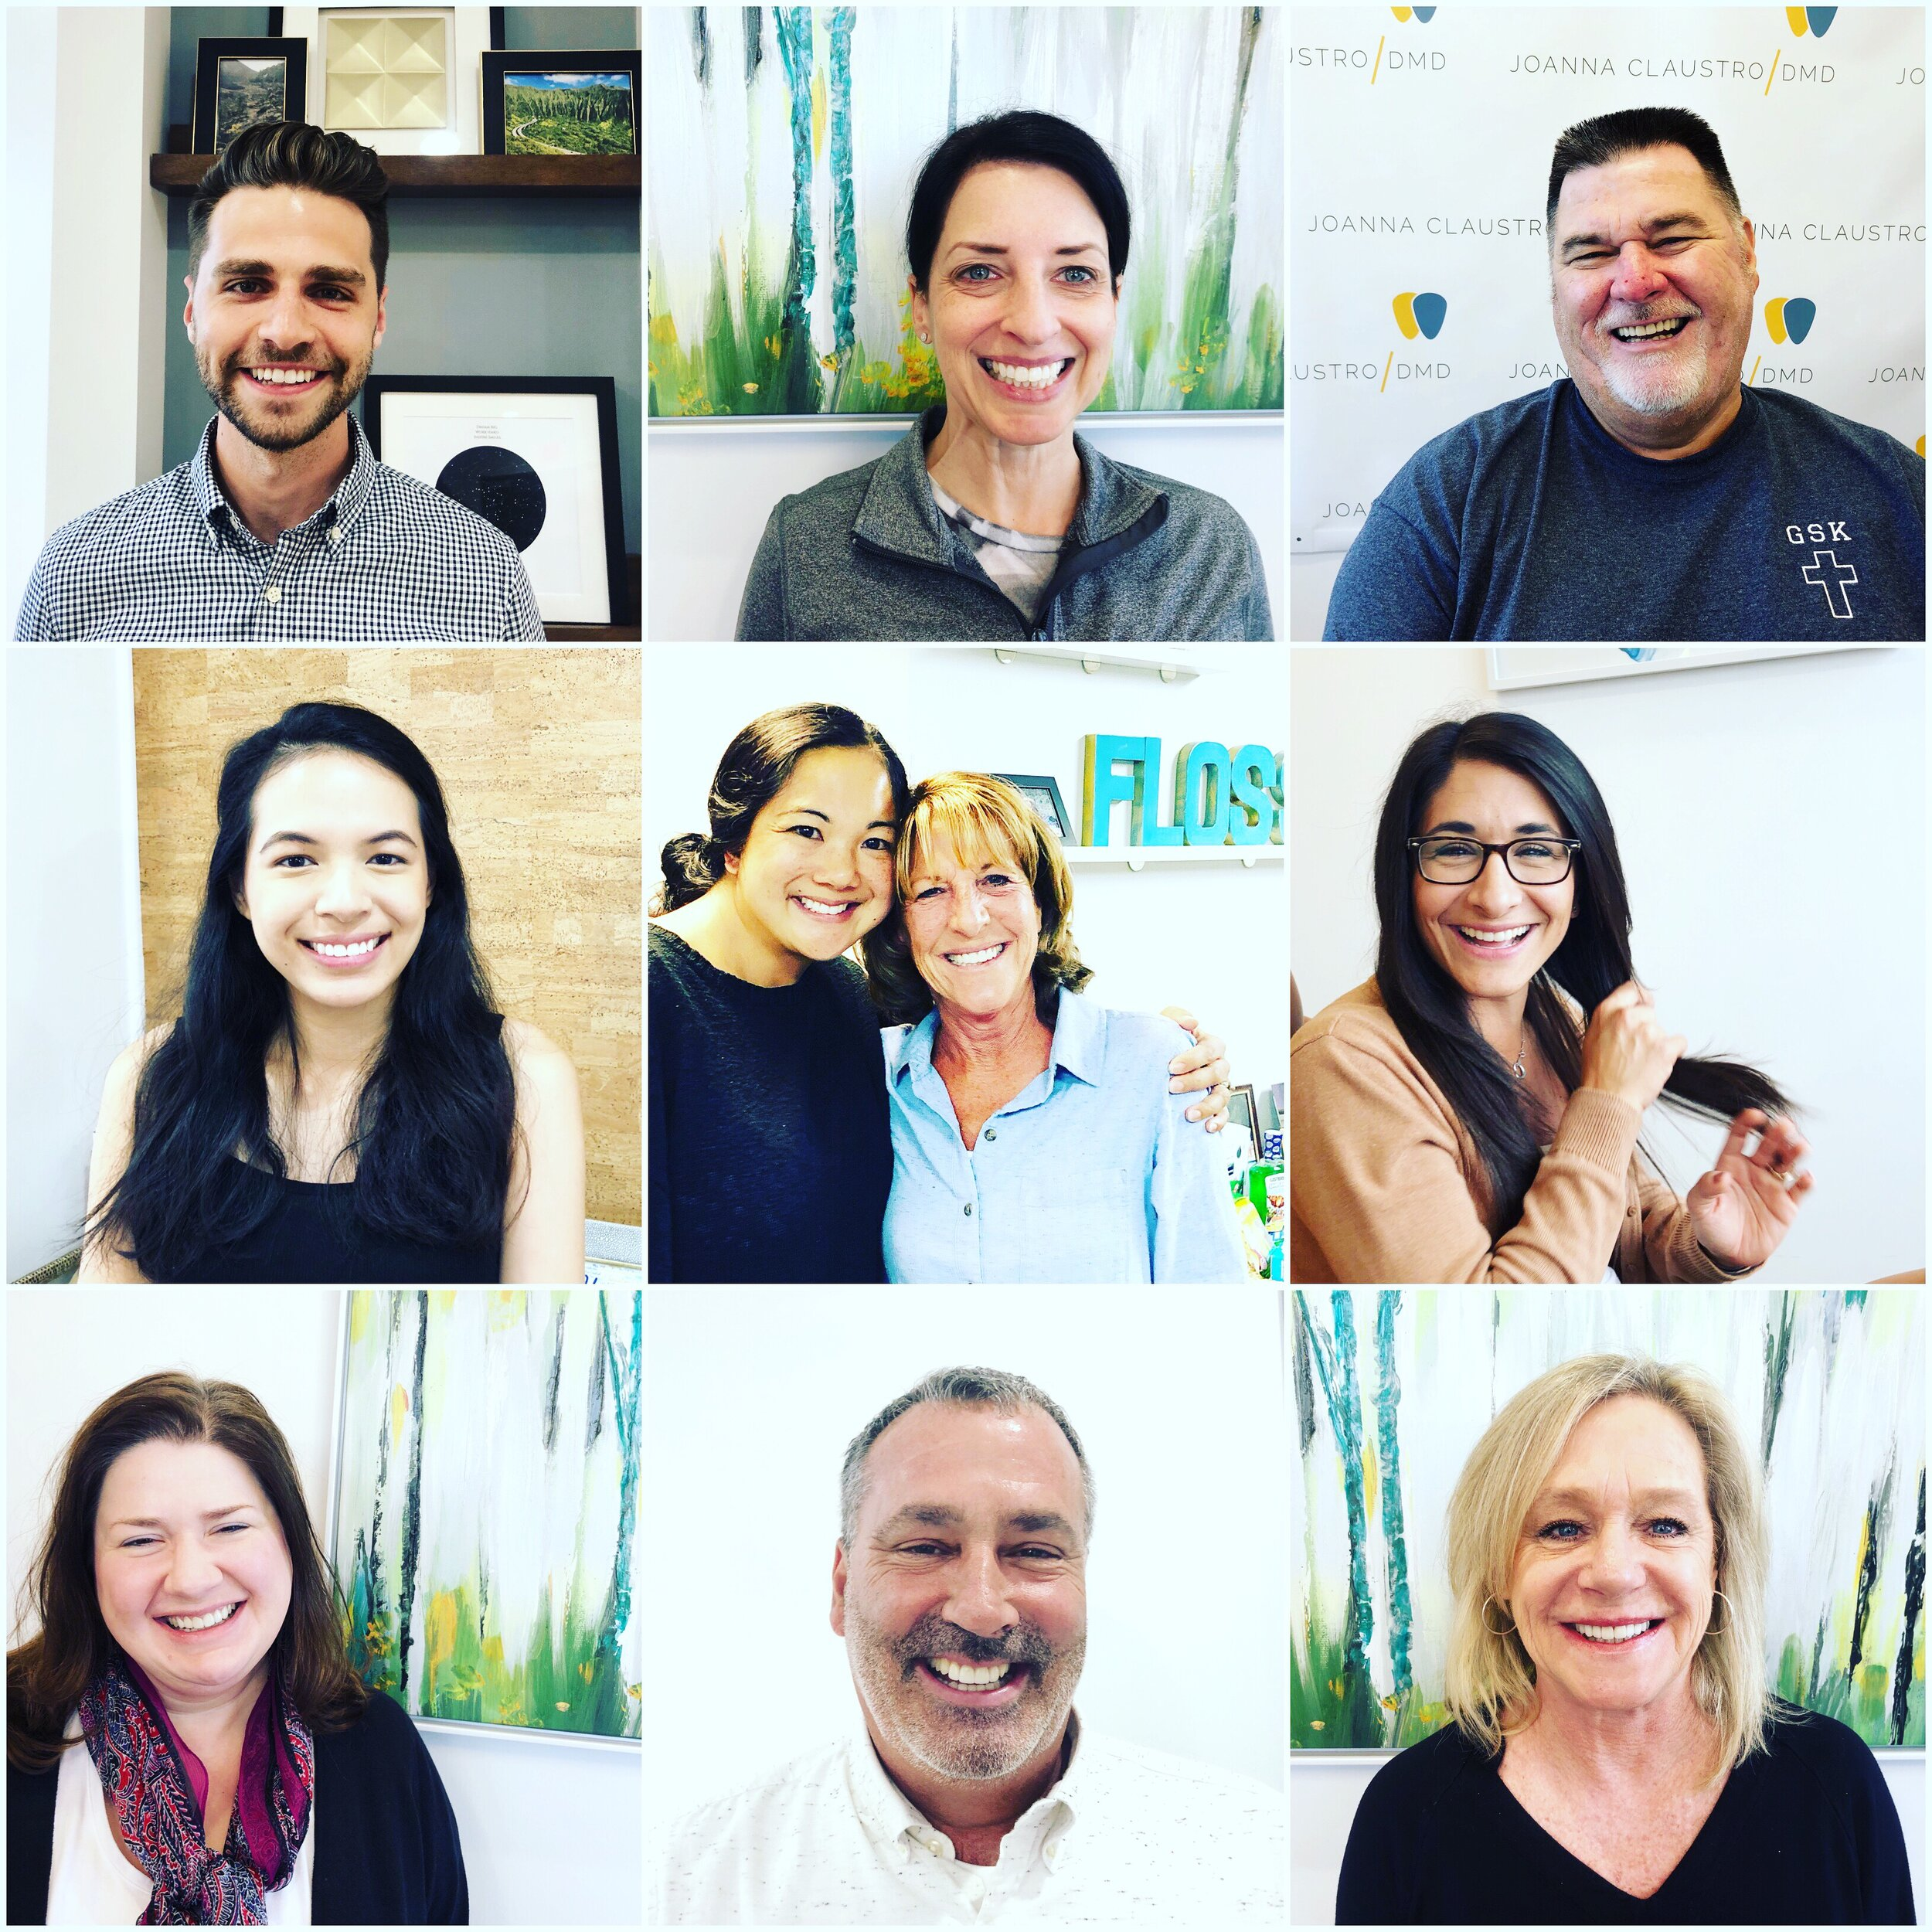 Join the hundreds of patients whose lives and smiles have been transformed by Joanna Claustro, DMD and her amazing team of dental professionals in Ashburn, Virginia. You deserve the best, so go to the best.